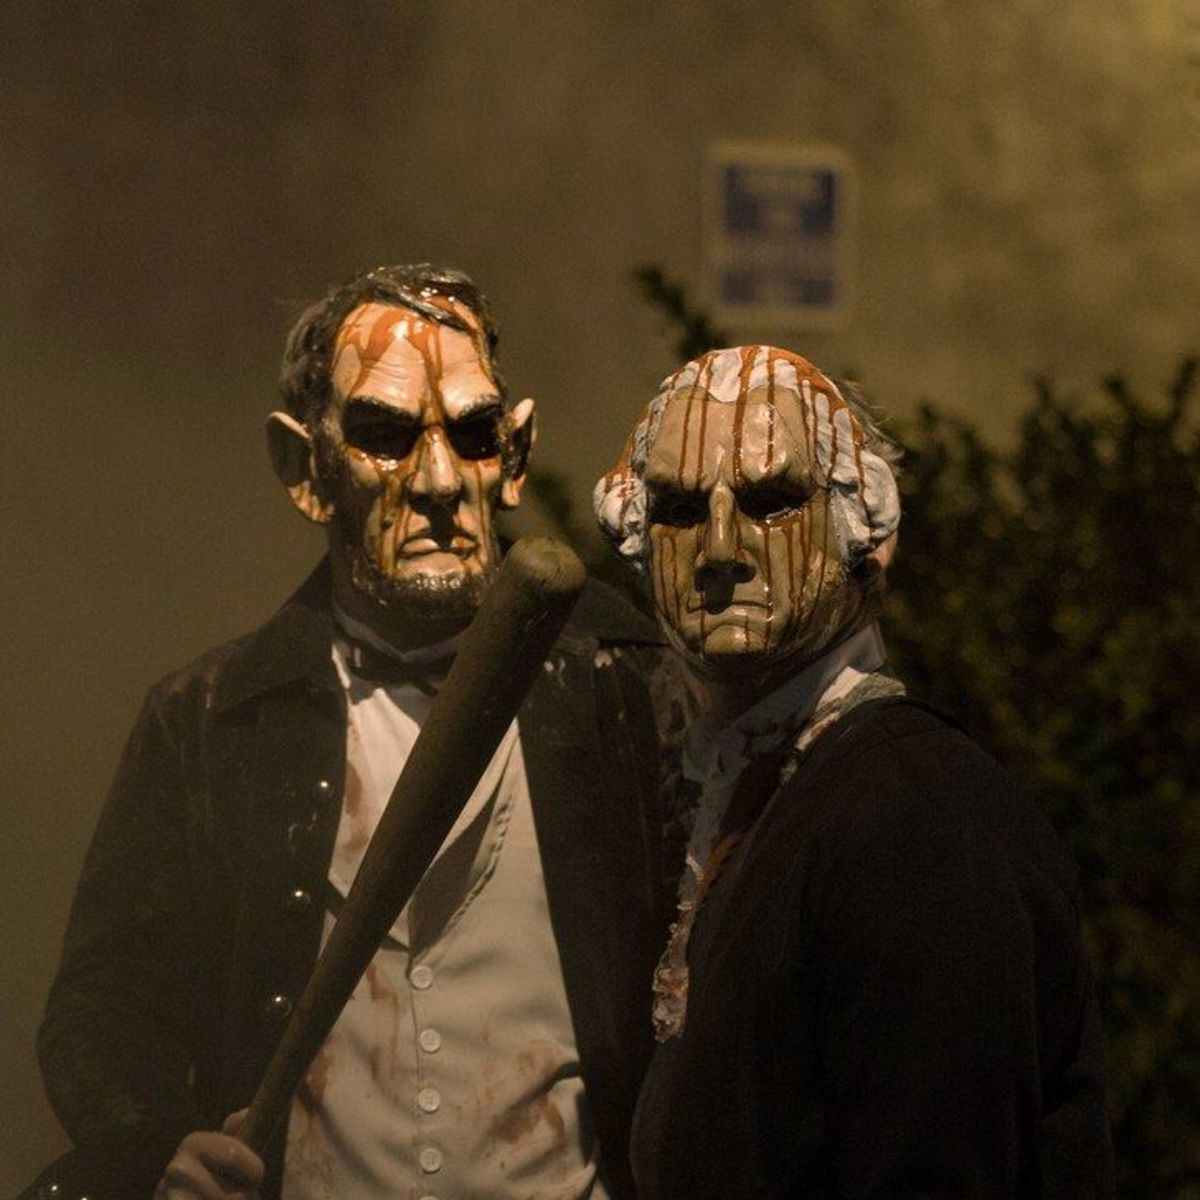 Collector 2. Actors of the second part of the franchise